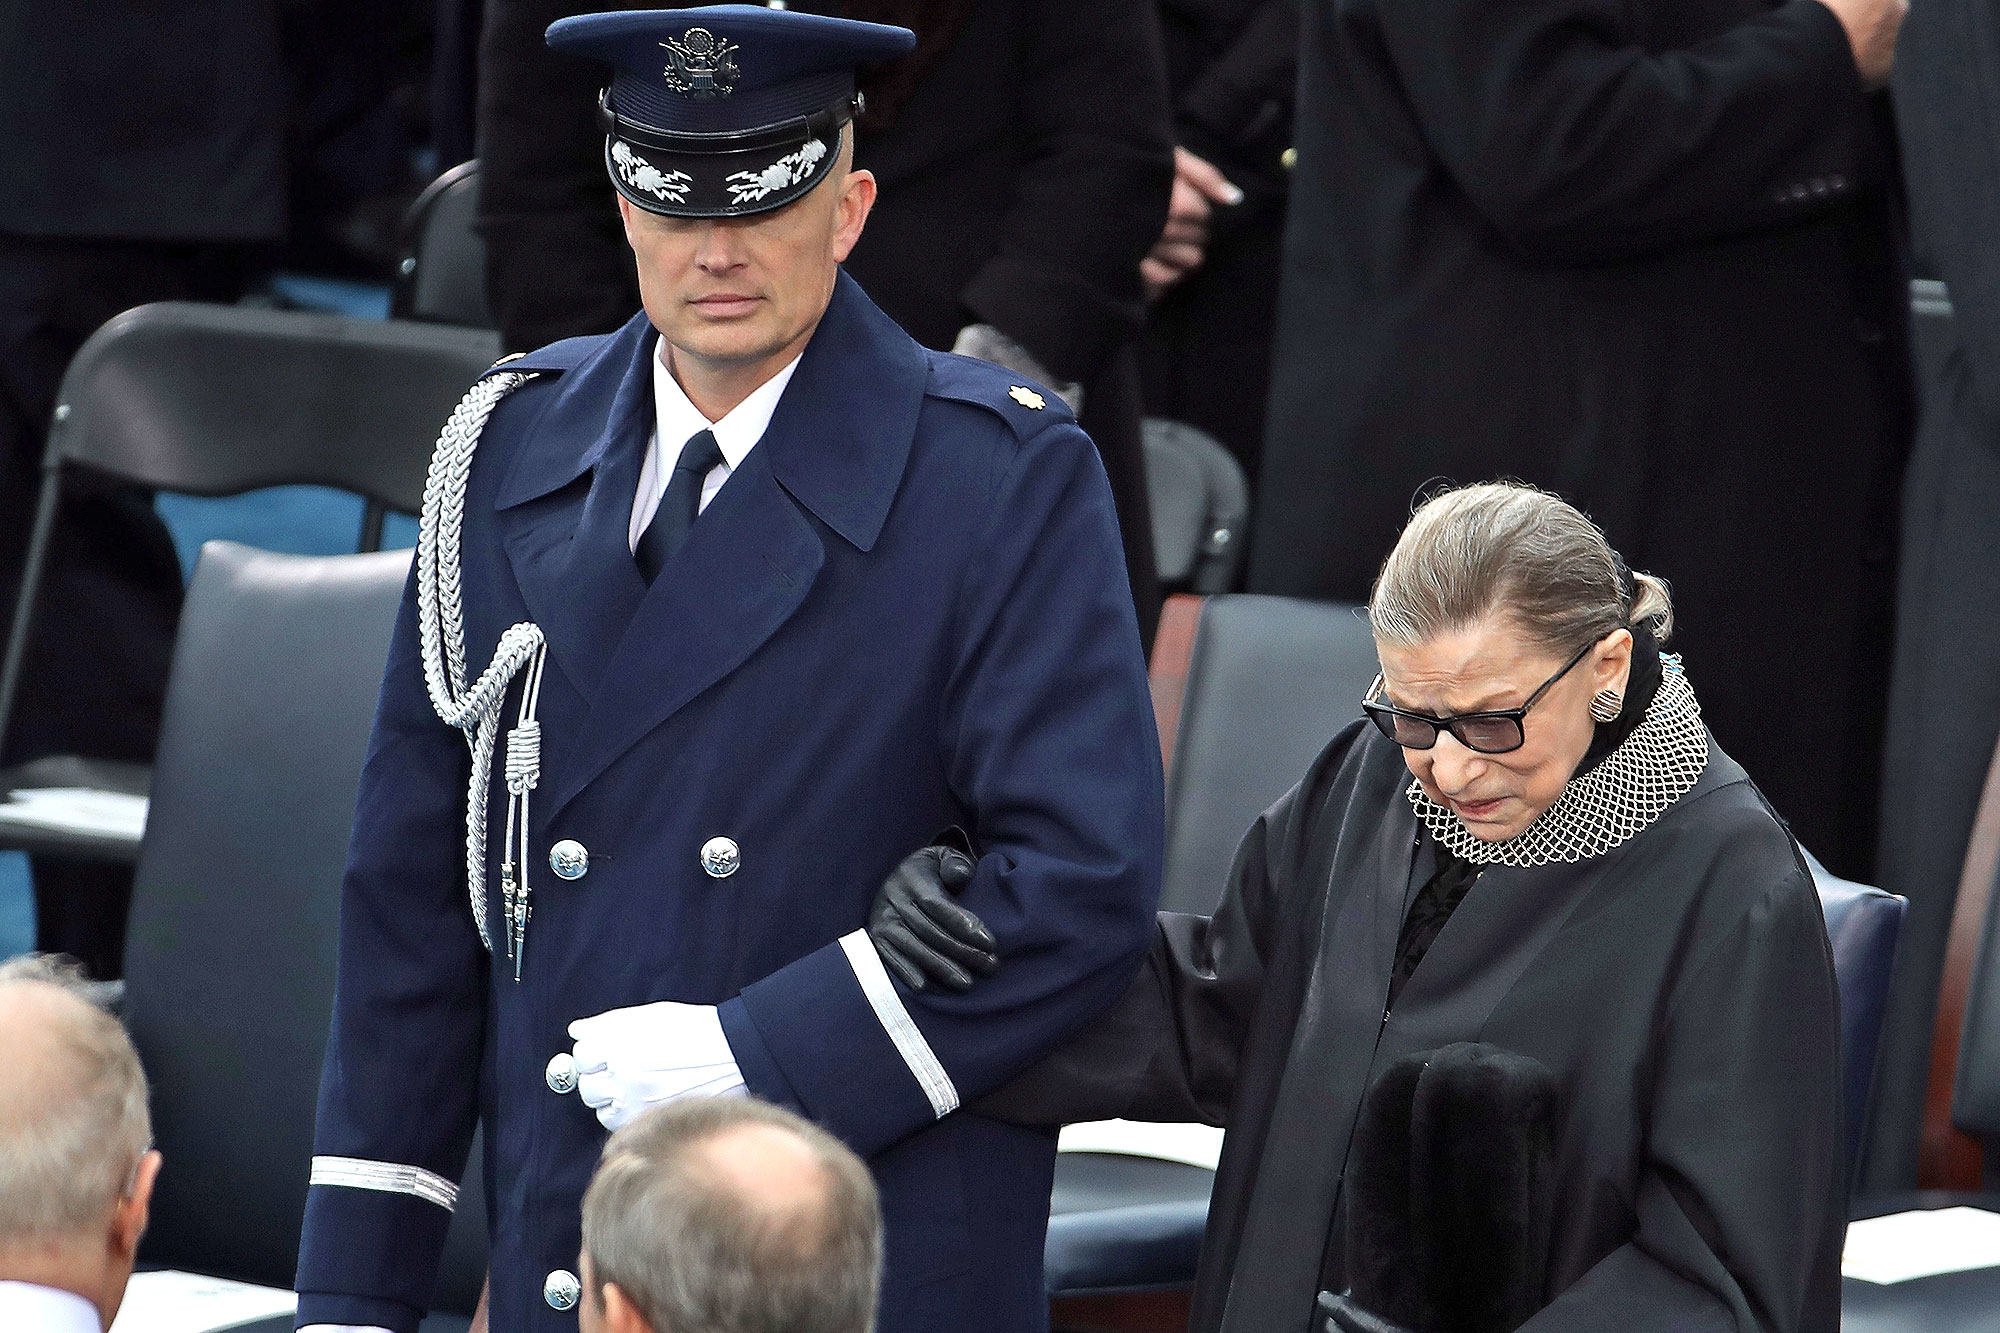 WASHINGTON, DC - JANUARY 20: Supreme Court Justice Ruth Bader Ginsburg arrives on the West Front of the U.S. Capitol on January 20, 2017 in Washington, DC. In today's inauguration ceremony Donald J. Trump becomes the 45th president of the United States. (Photo by Drew Angerer/Getty Images)